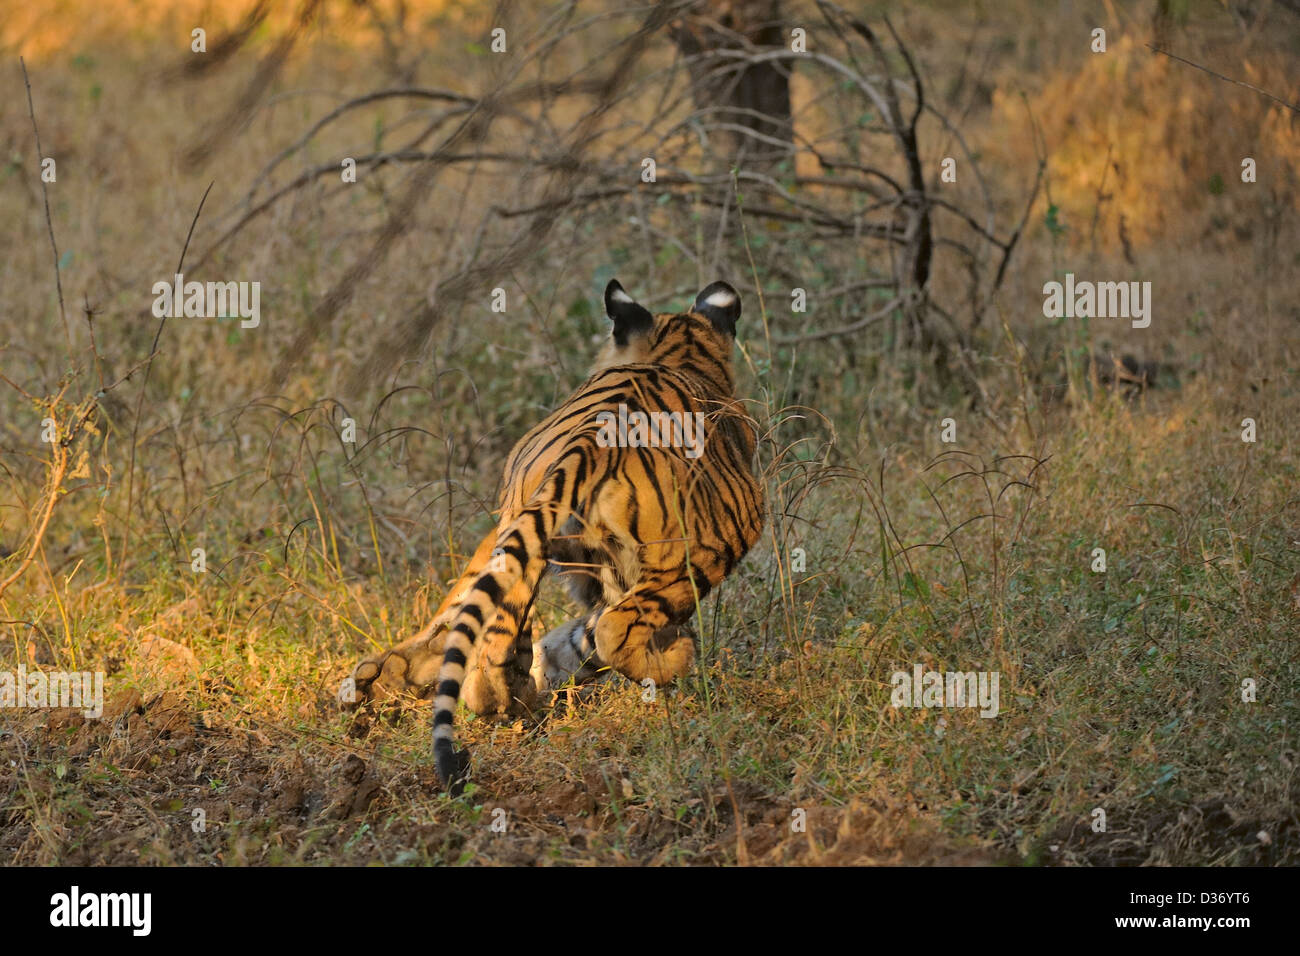 Charging wild tiger in Ranthambore national park - Stock Image